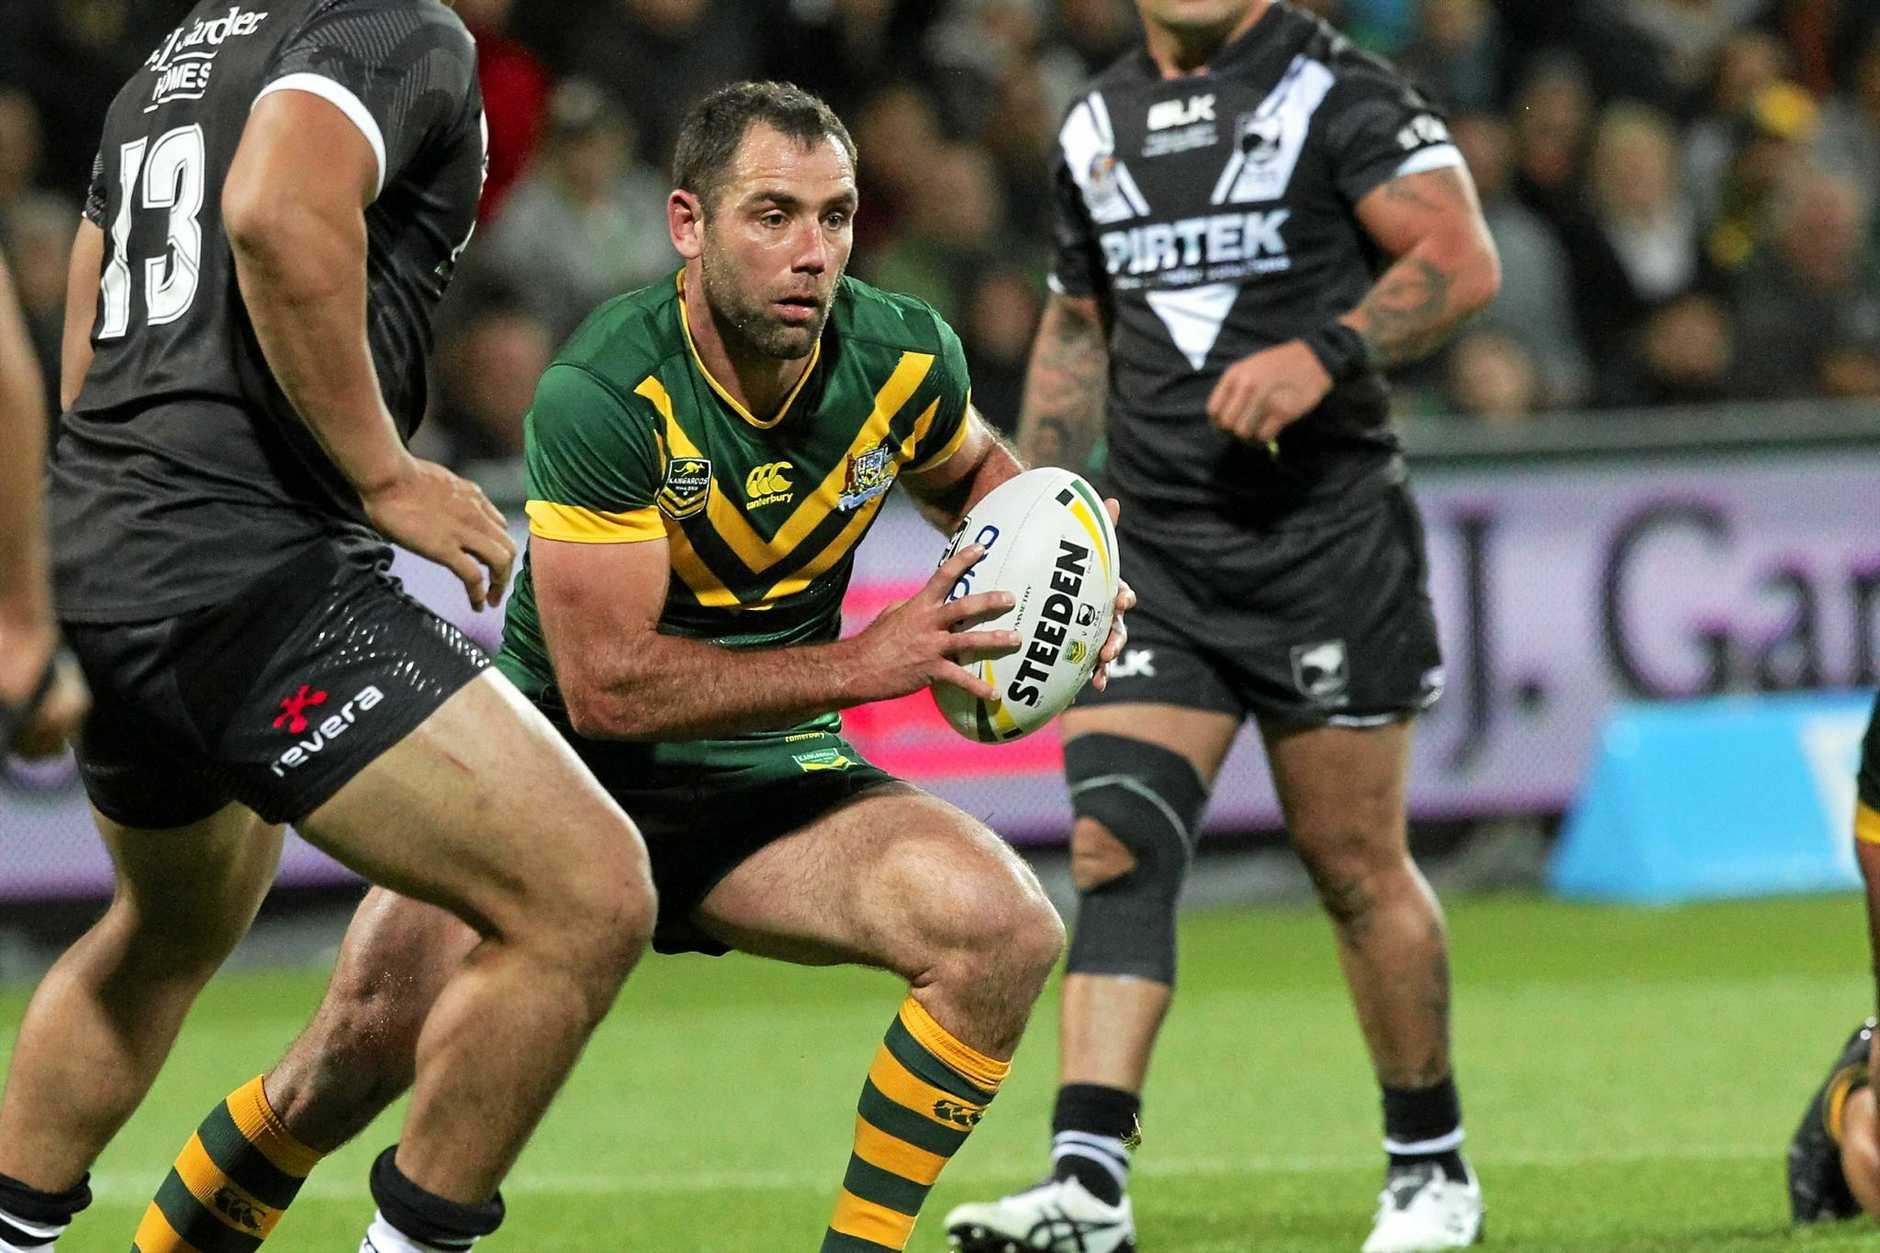 Cameron Smith has been the subject of a Twitter prank it seems.